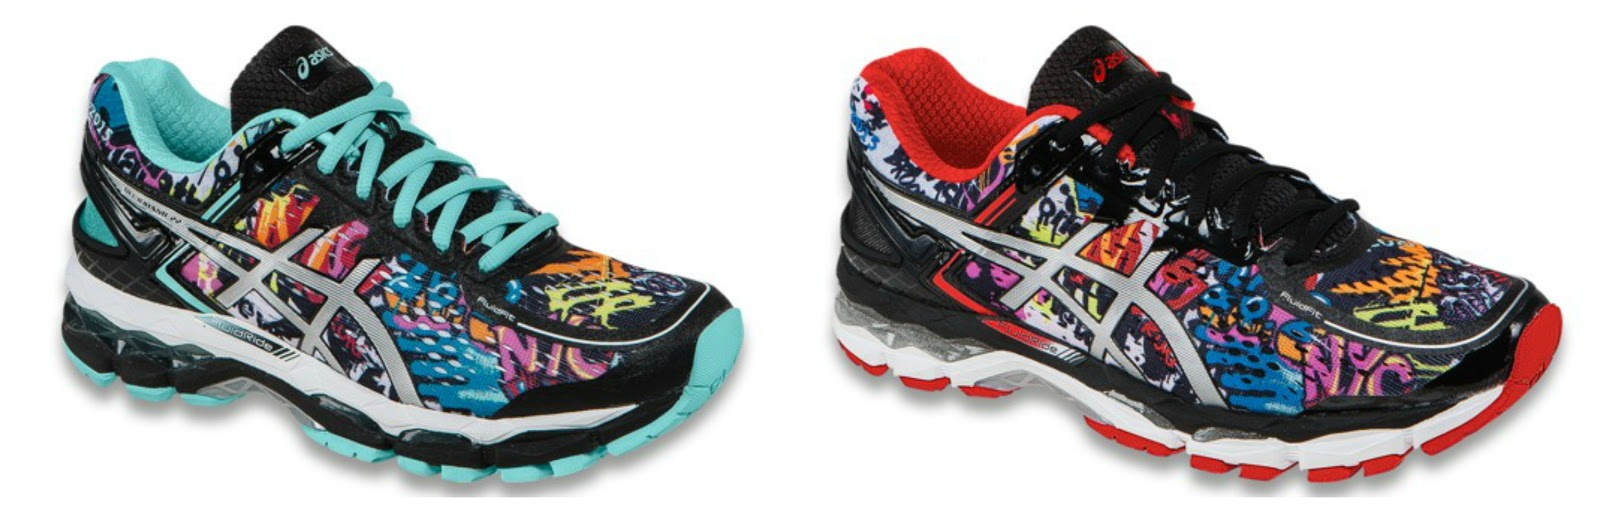 Asics New York Marathon Edition